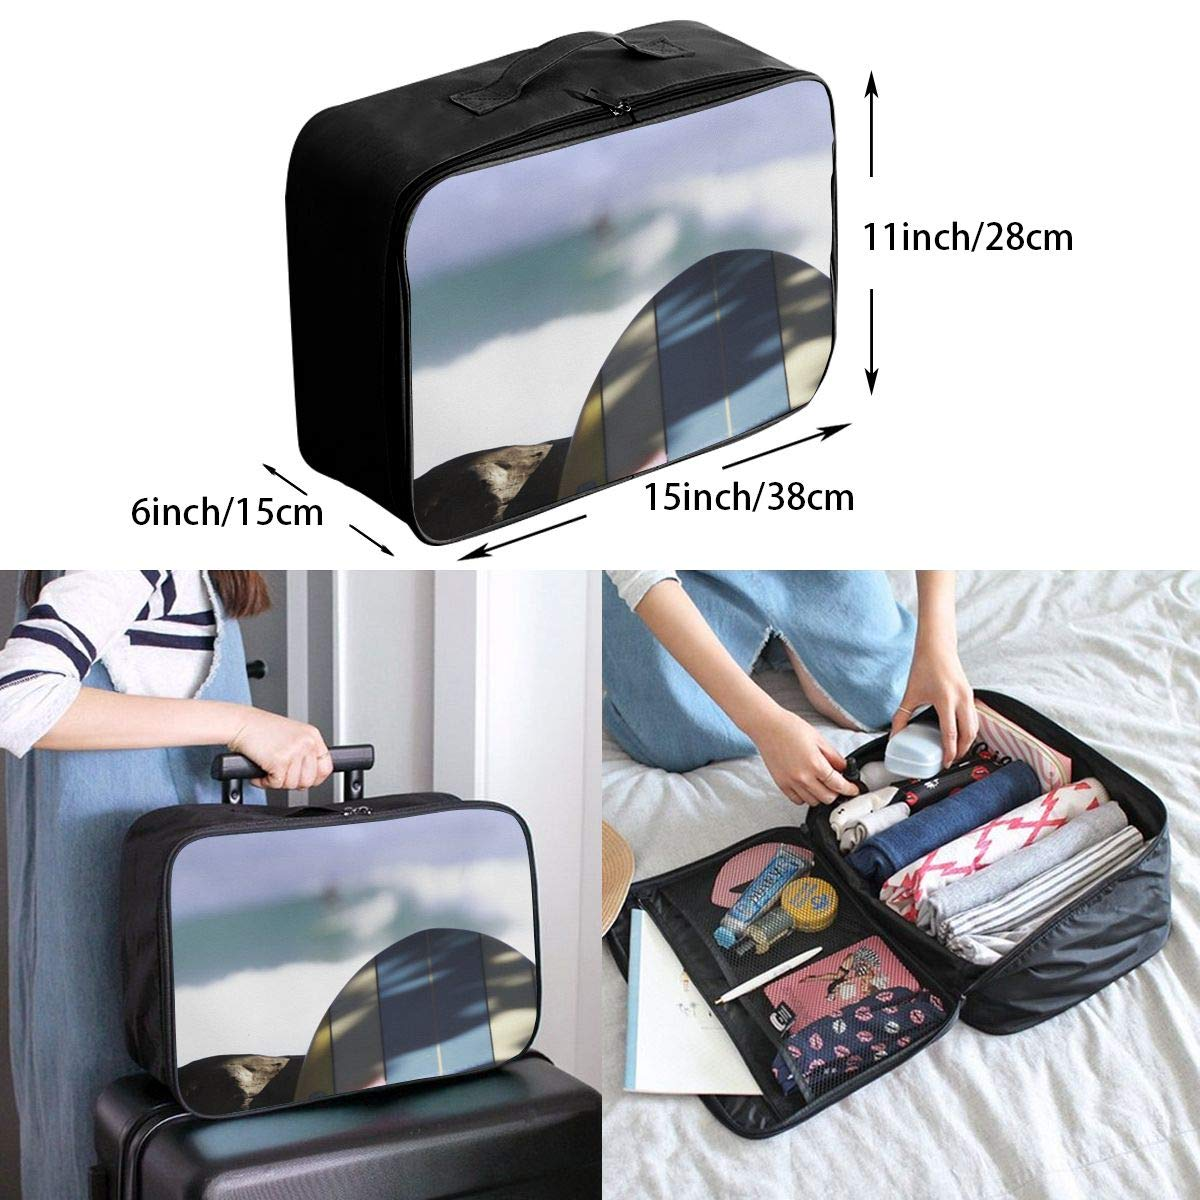 Travel Luggage Duffle Bag Lightweight Portable Handbag Surf Board Print Large Capacity Waterproof Foldable Storage Tote